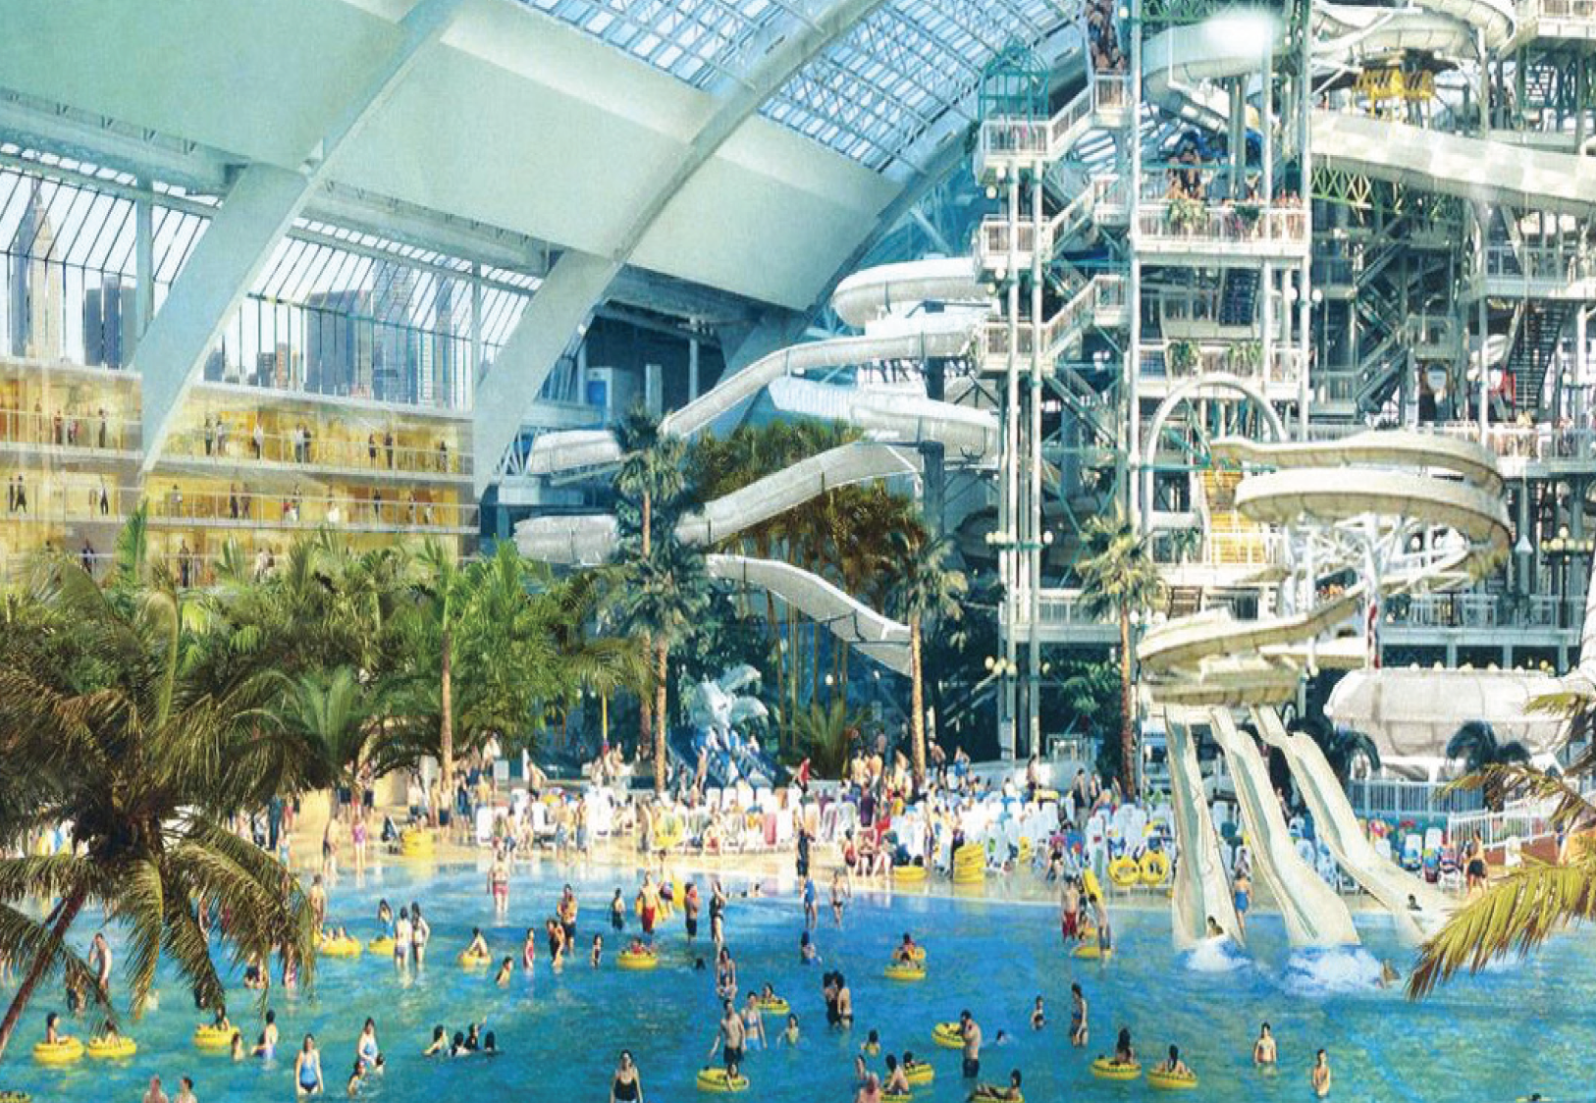 A rendering of the water park planned for American Dream Miami.